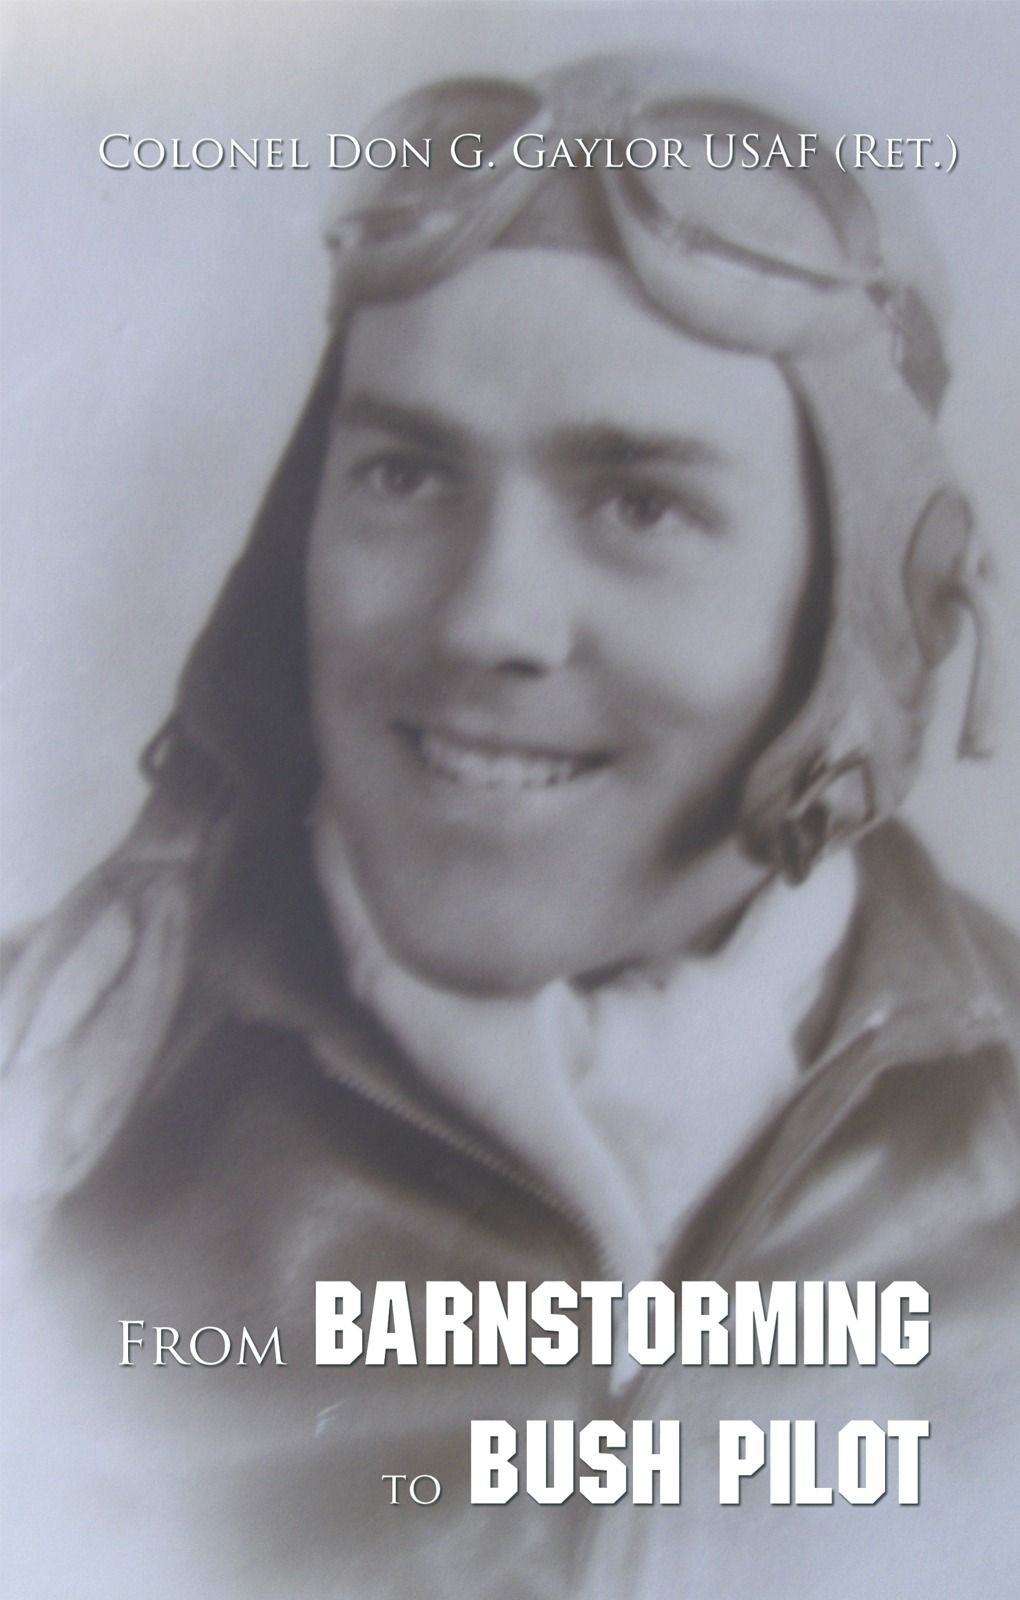 From Barnstorming To Bush Pilot By: Colonel Don G. Gaylor USAF (Ret.)